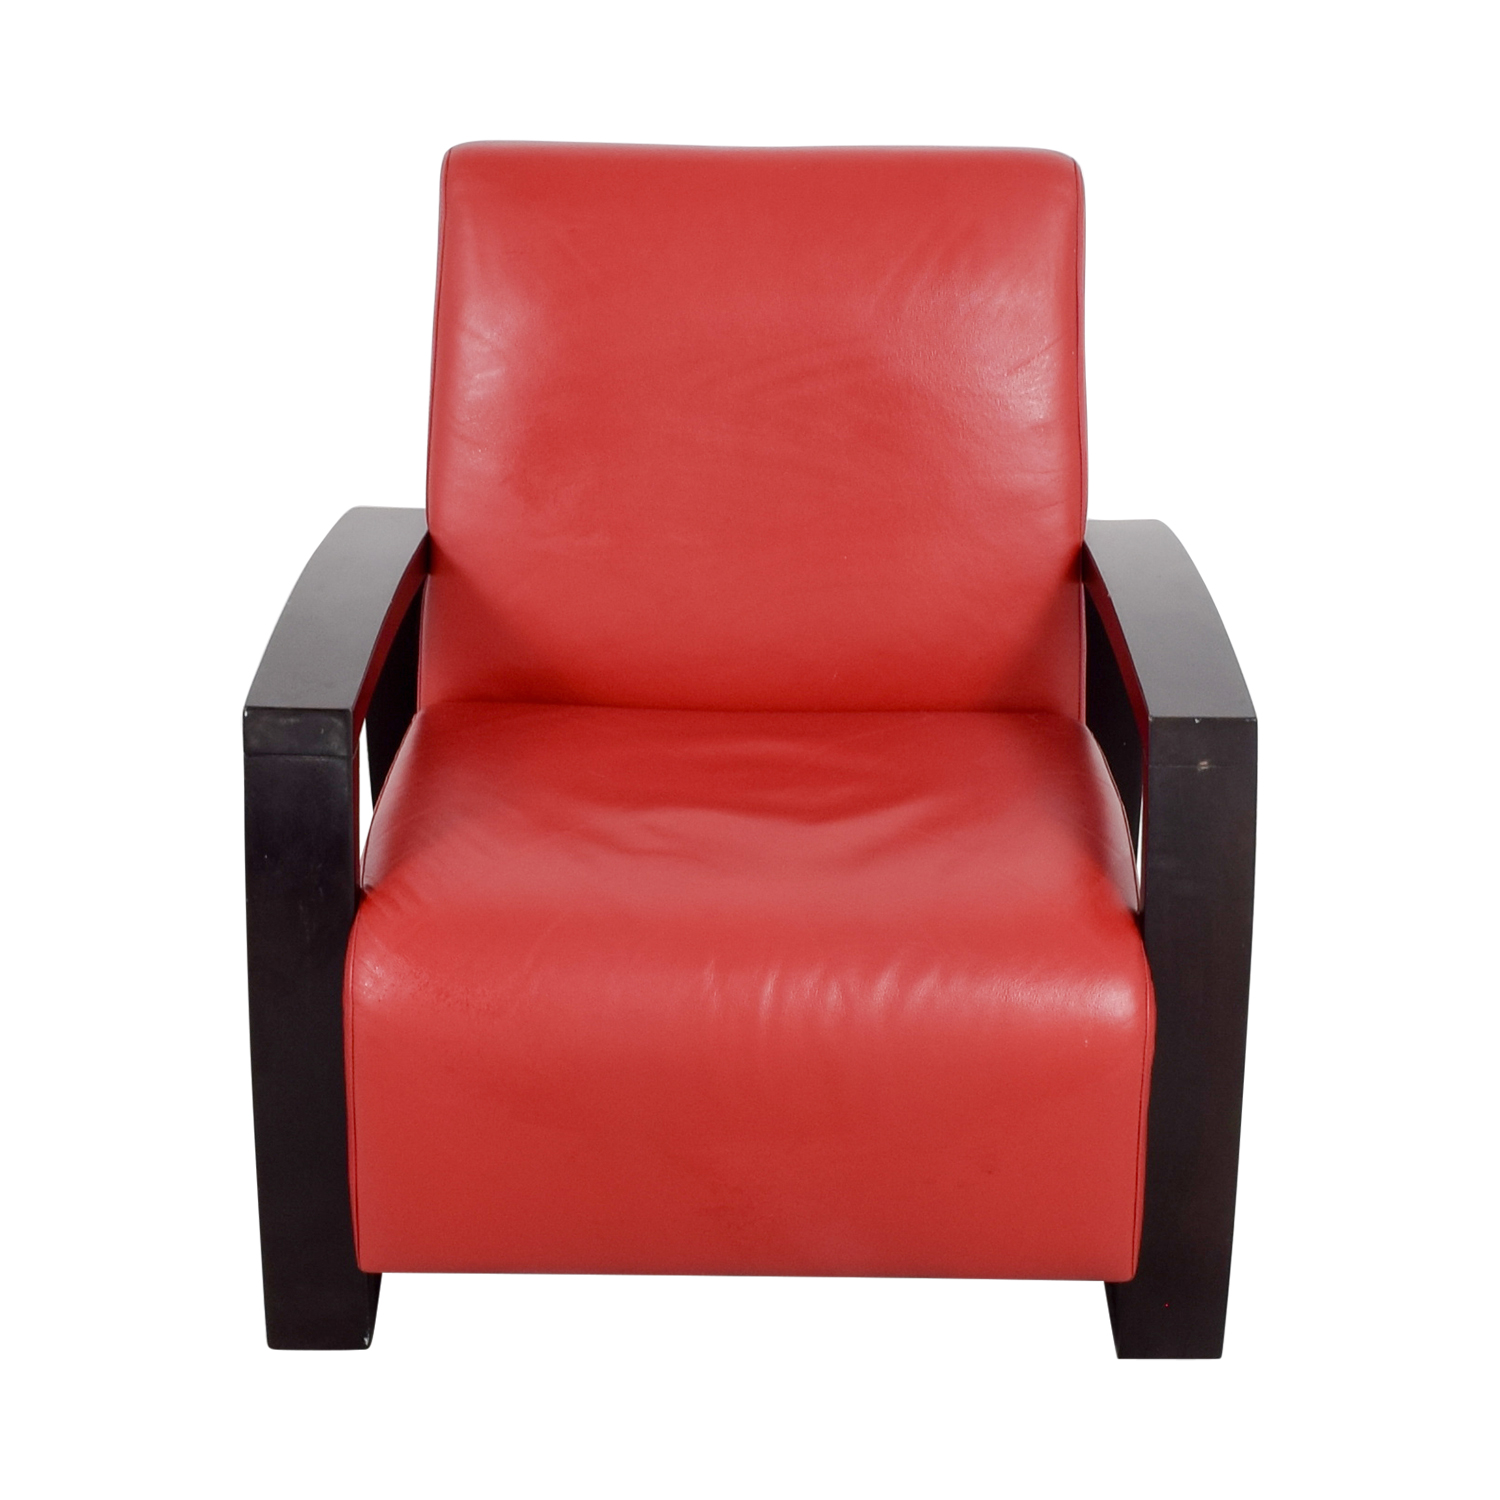 Small Red Leather Accent Chair